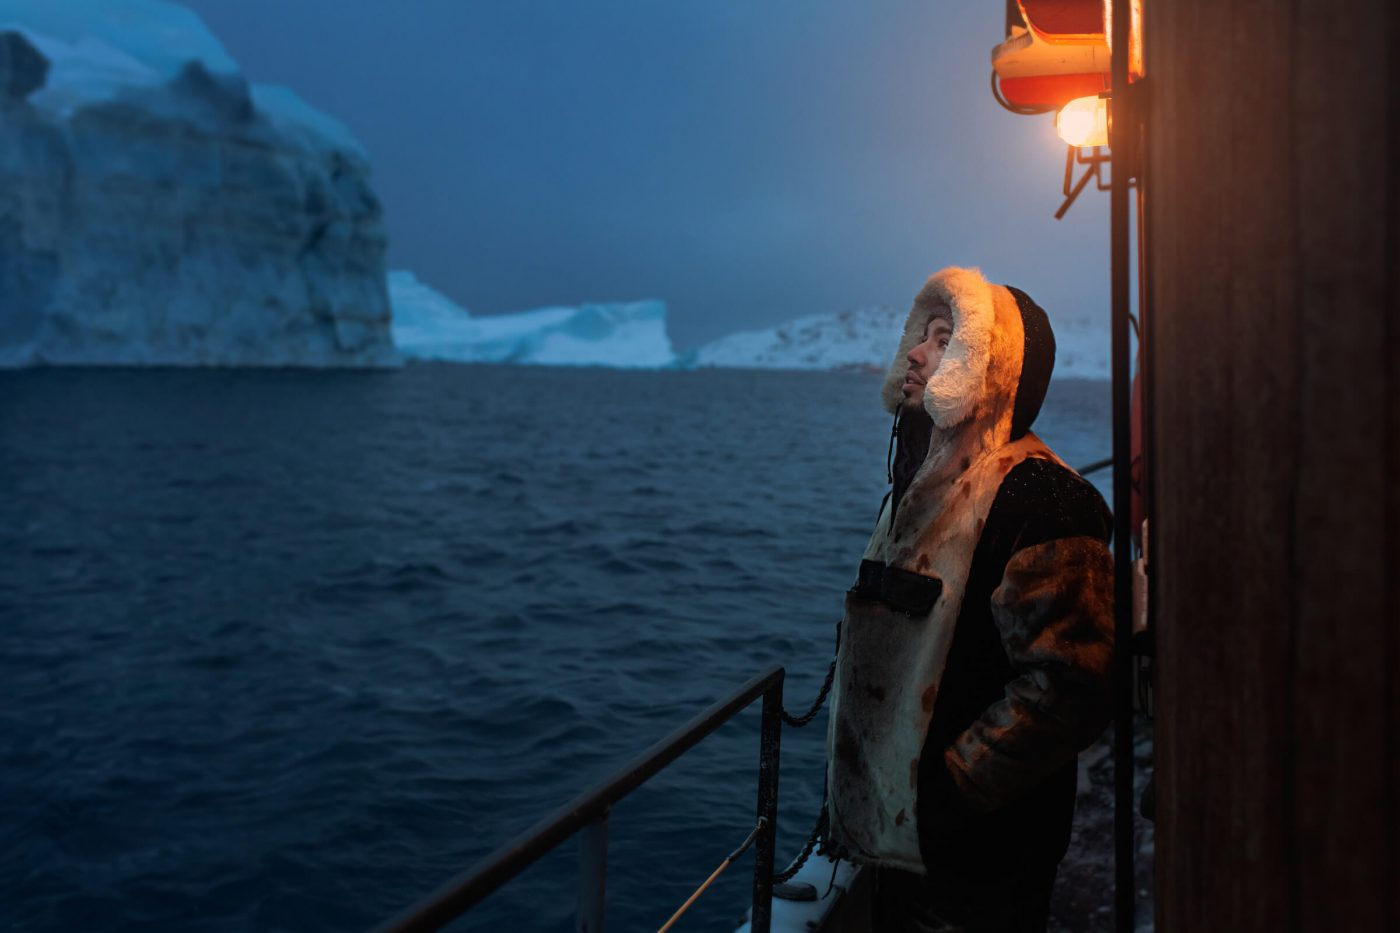 Canadian social media influencer Siya Zarrabi on an iceberg boat tour in Ilulissat in Greenland. By Rebecca Gustafsson